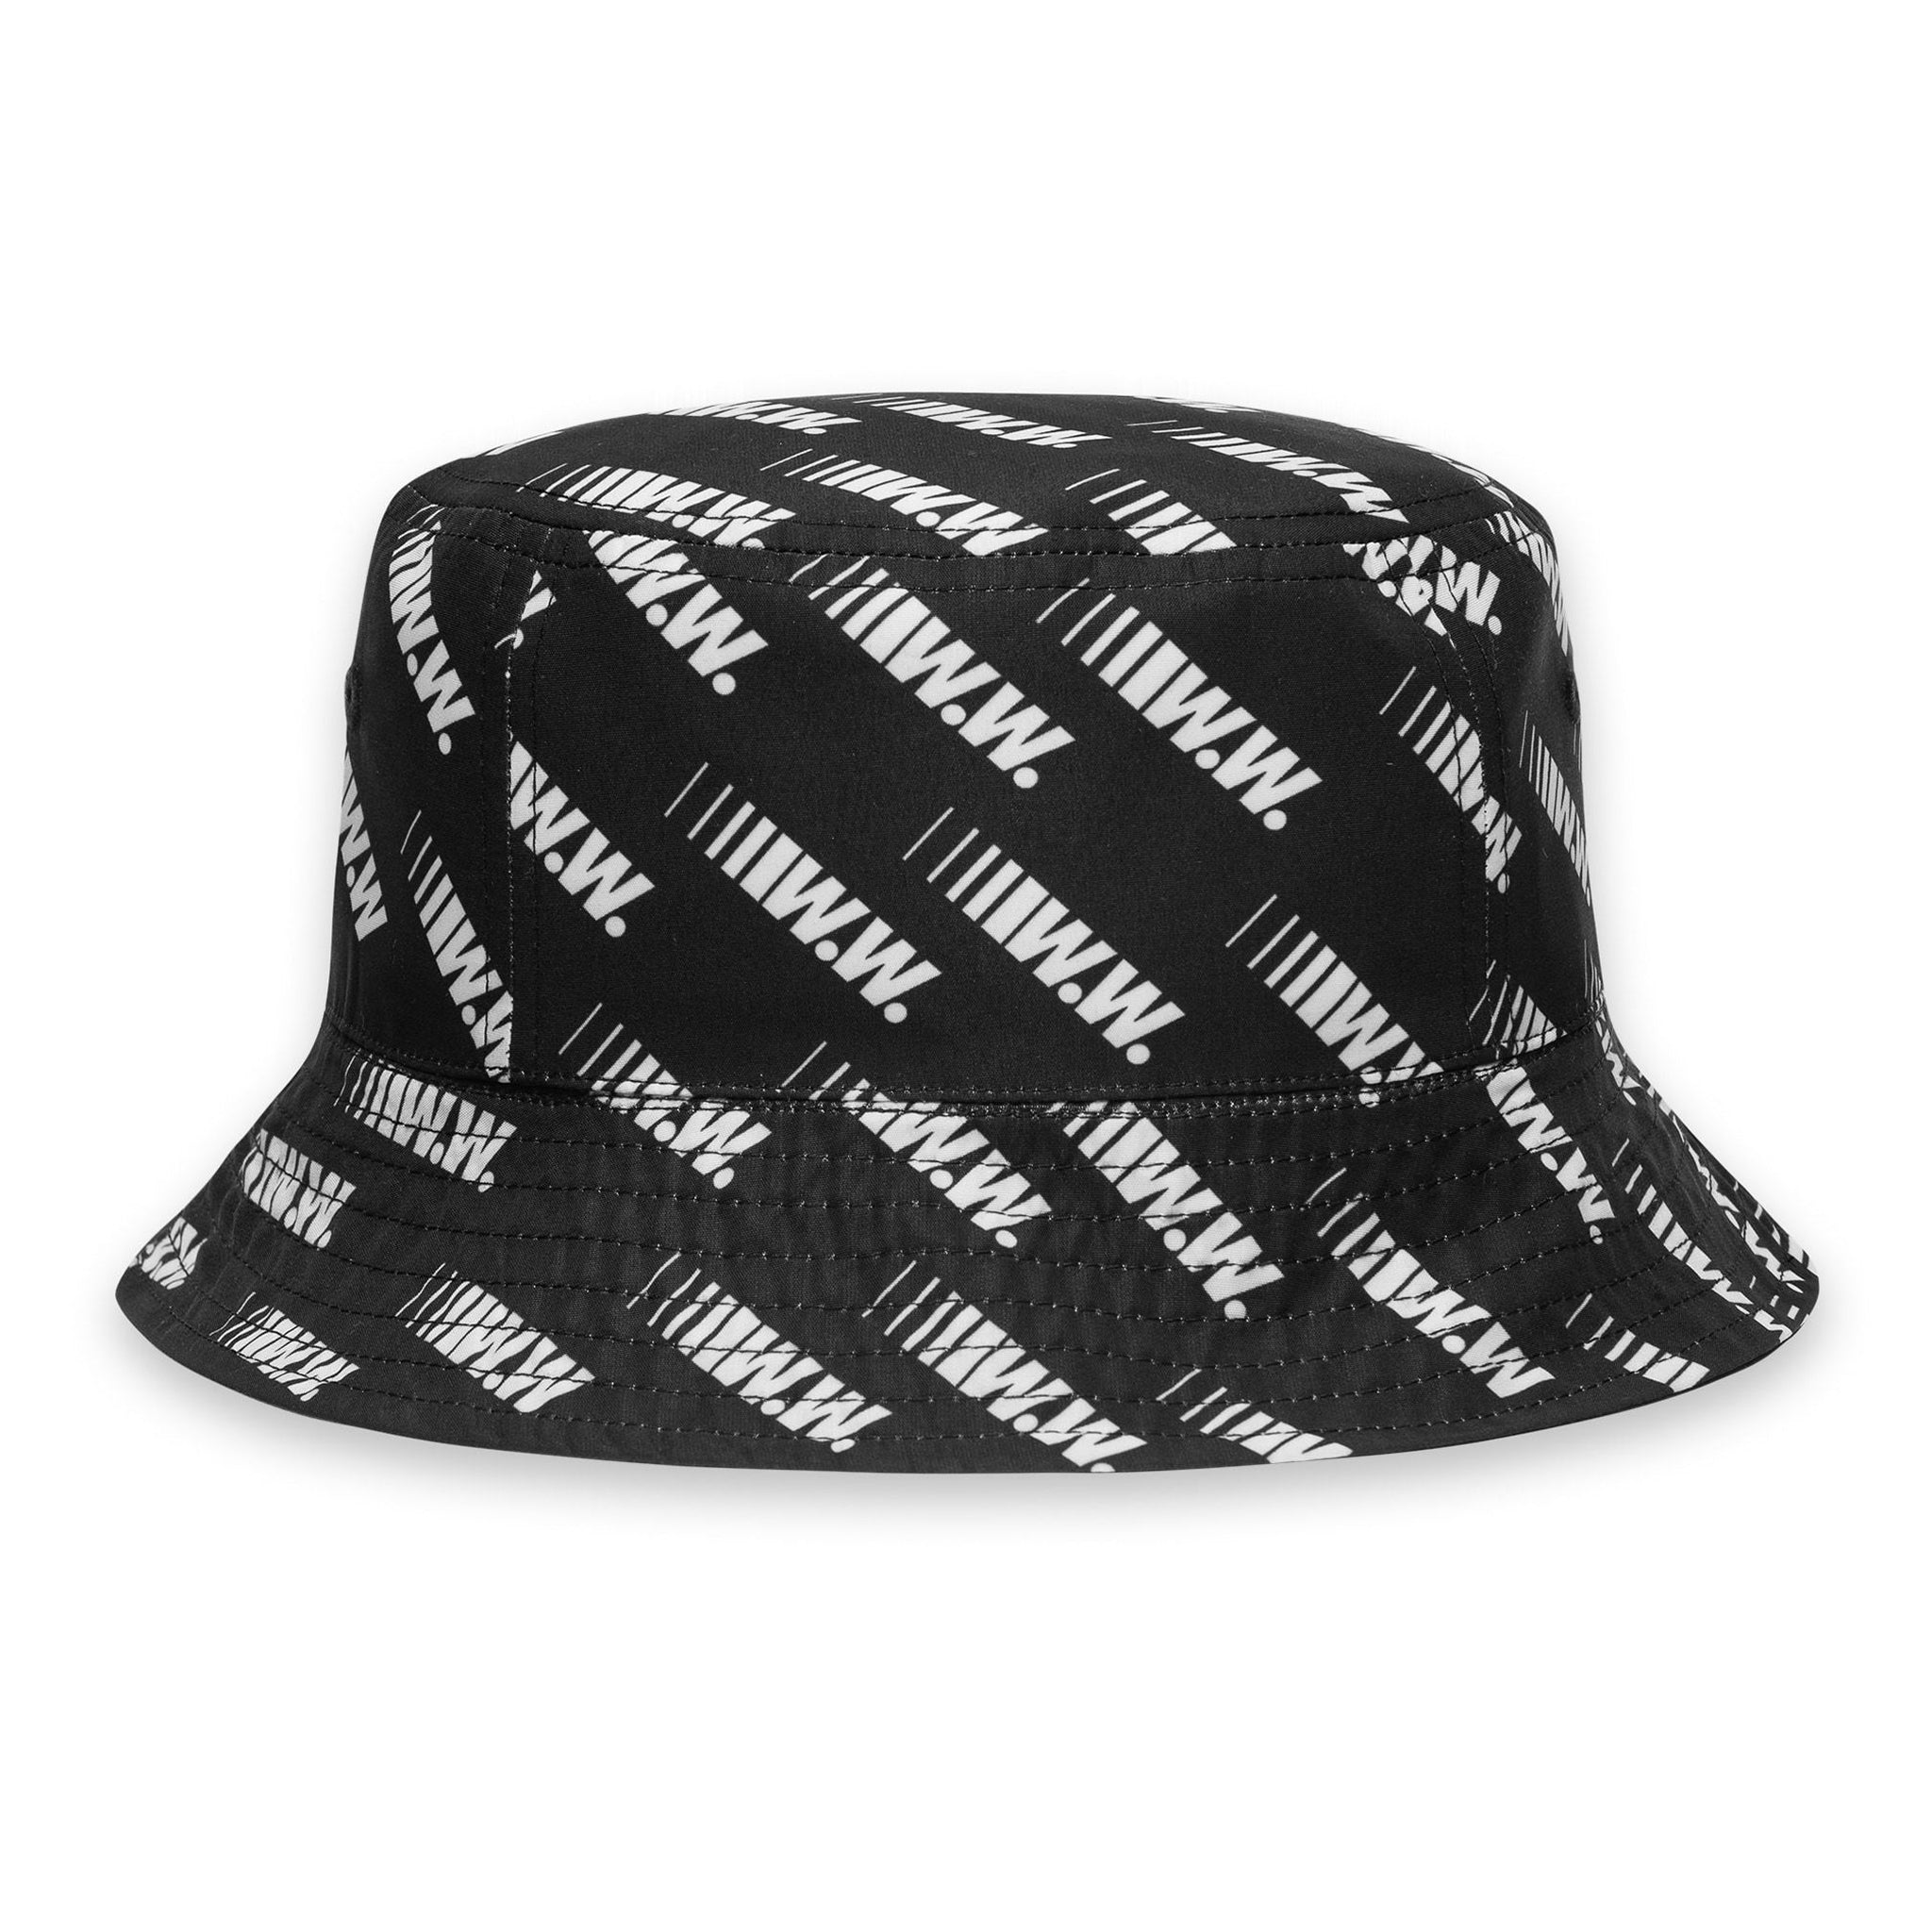 Wood Wood Bucket Hat Black All Over Print